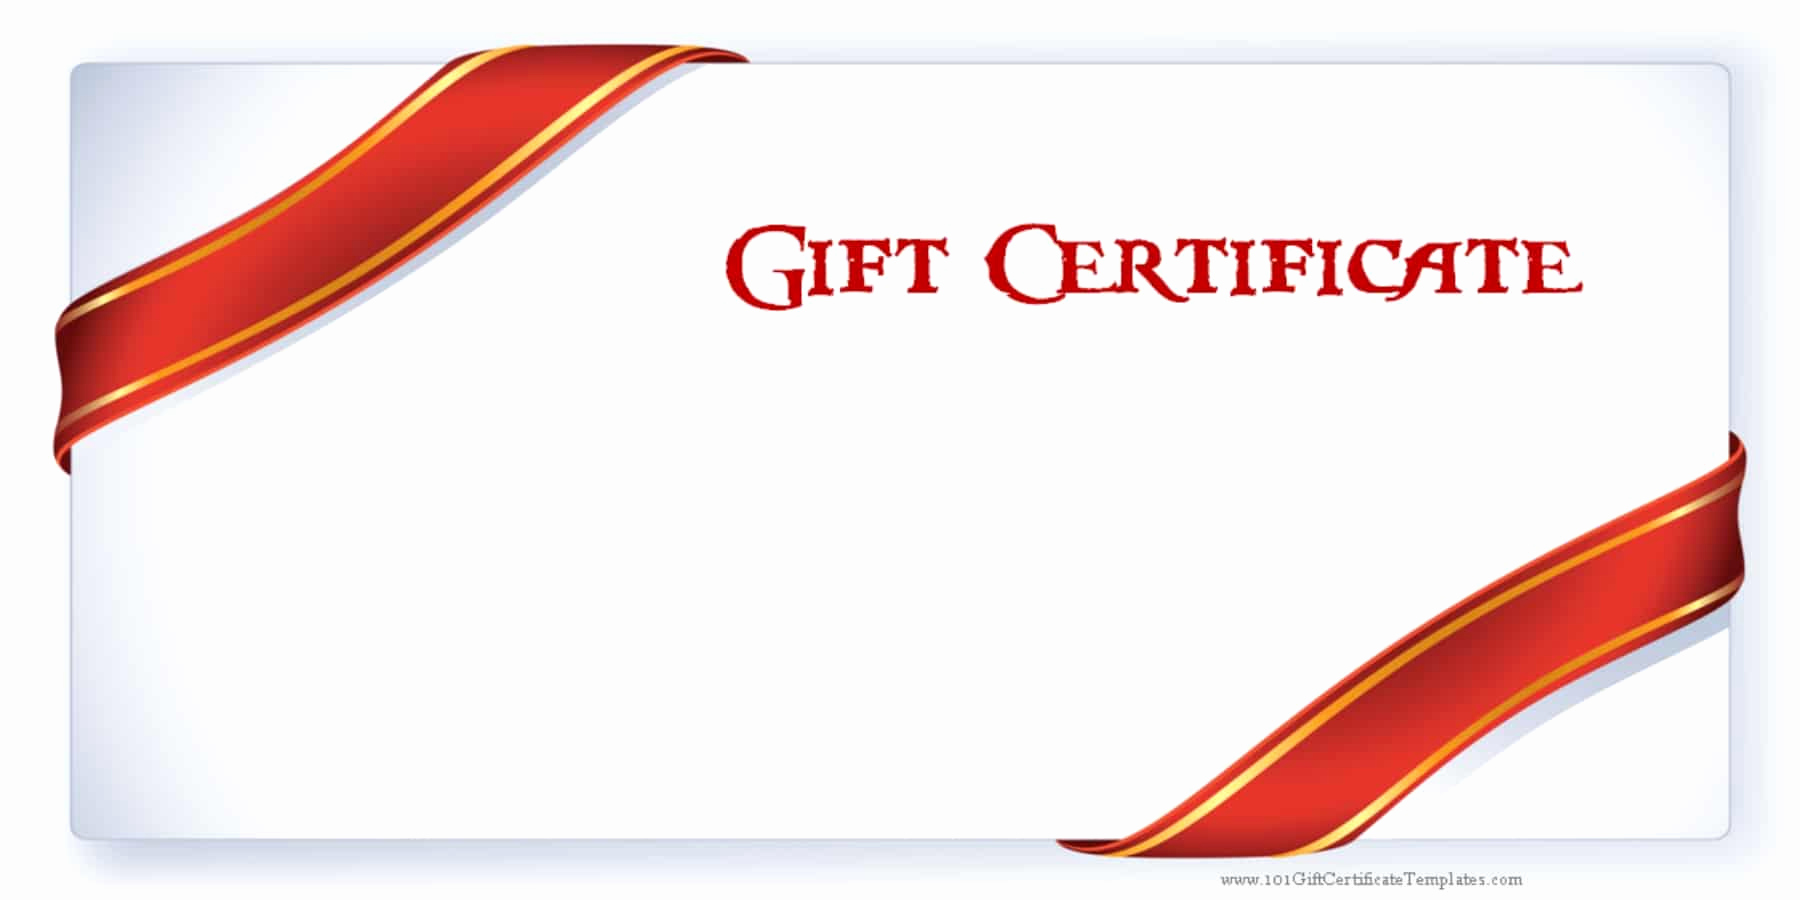 Free Gift Certificate Template Printable Luxury Printable Gift Certificate Templates